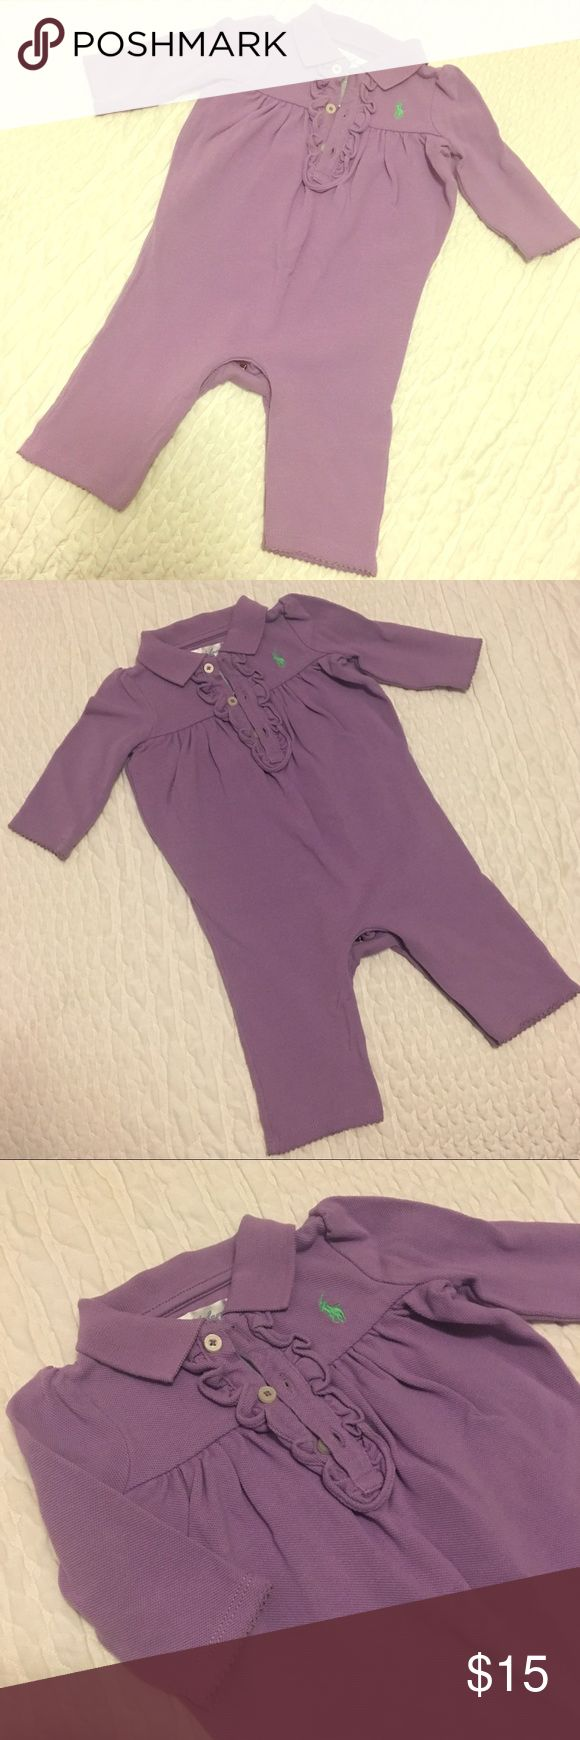 Ralph Lauren Purple Ruffled Jumper, Size 3Mo Darling and girly purple pique polo jumper!! Excellent condition, like new!! Adorable ruffles around the collar. So comfy, a great piece! Ralph Lauren One Pieces